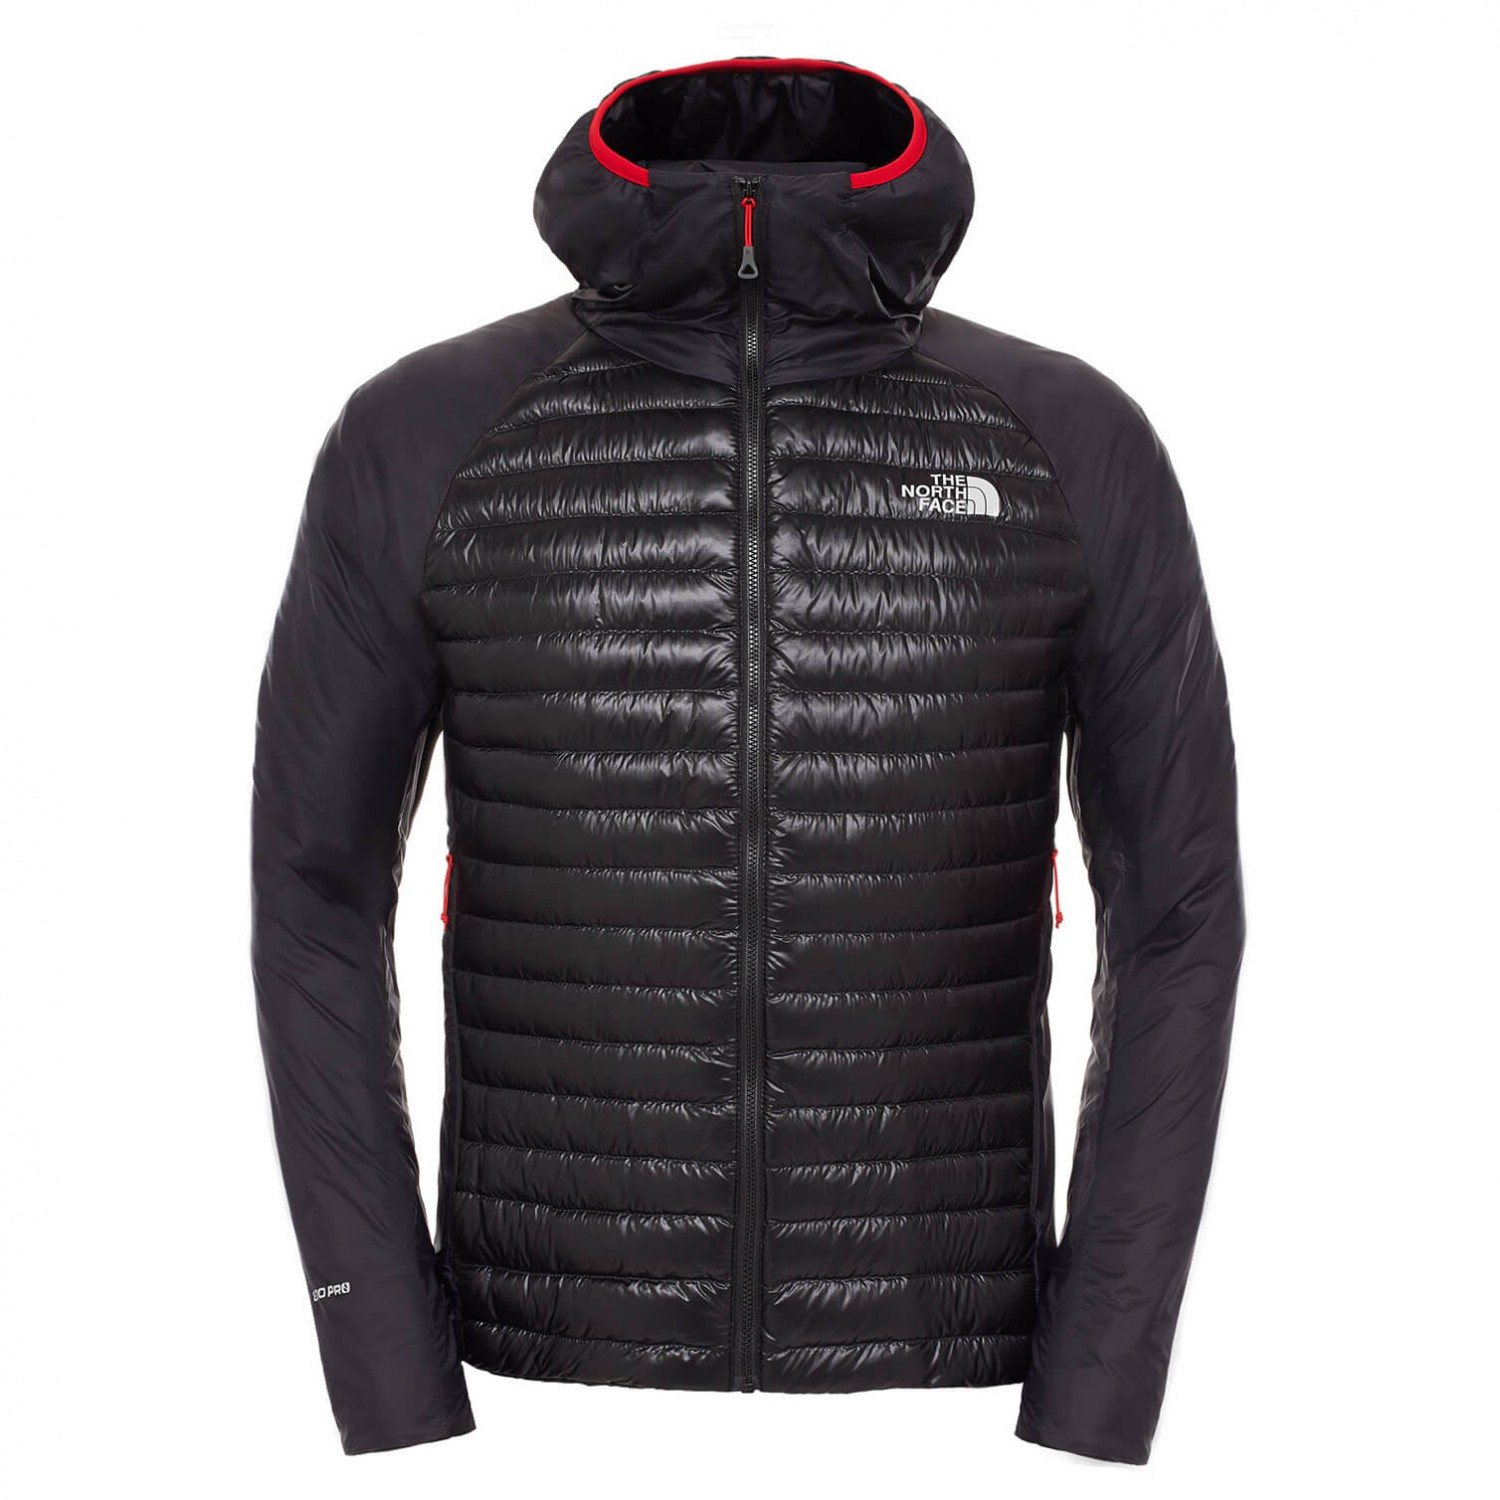 In addition to selling through department stores and outdoor retailers, North Face operates over 40 retail locations in the United States, 18 locations in the United Kingdom and many others worldwide. The service areas of the company include North America, South America, Europe and Asia Pacific/5(26).